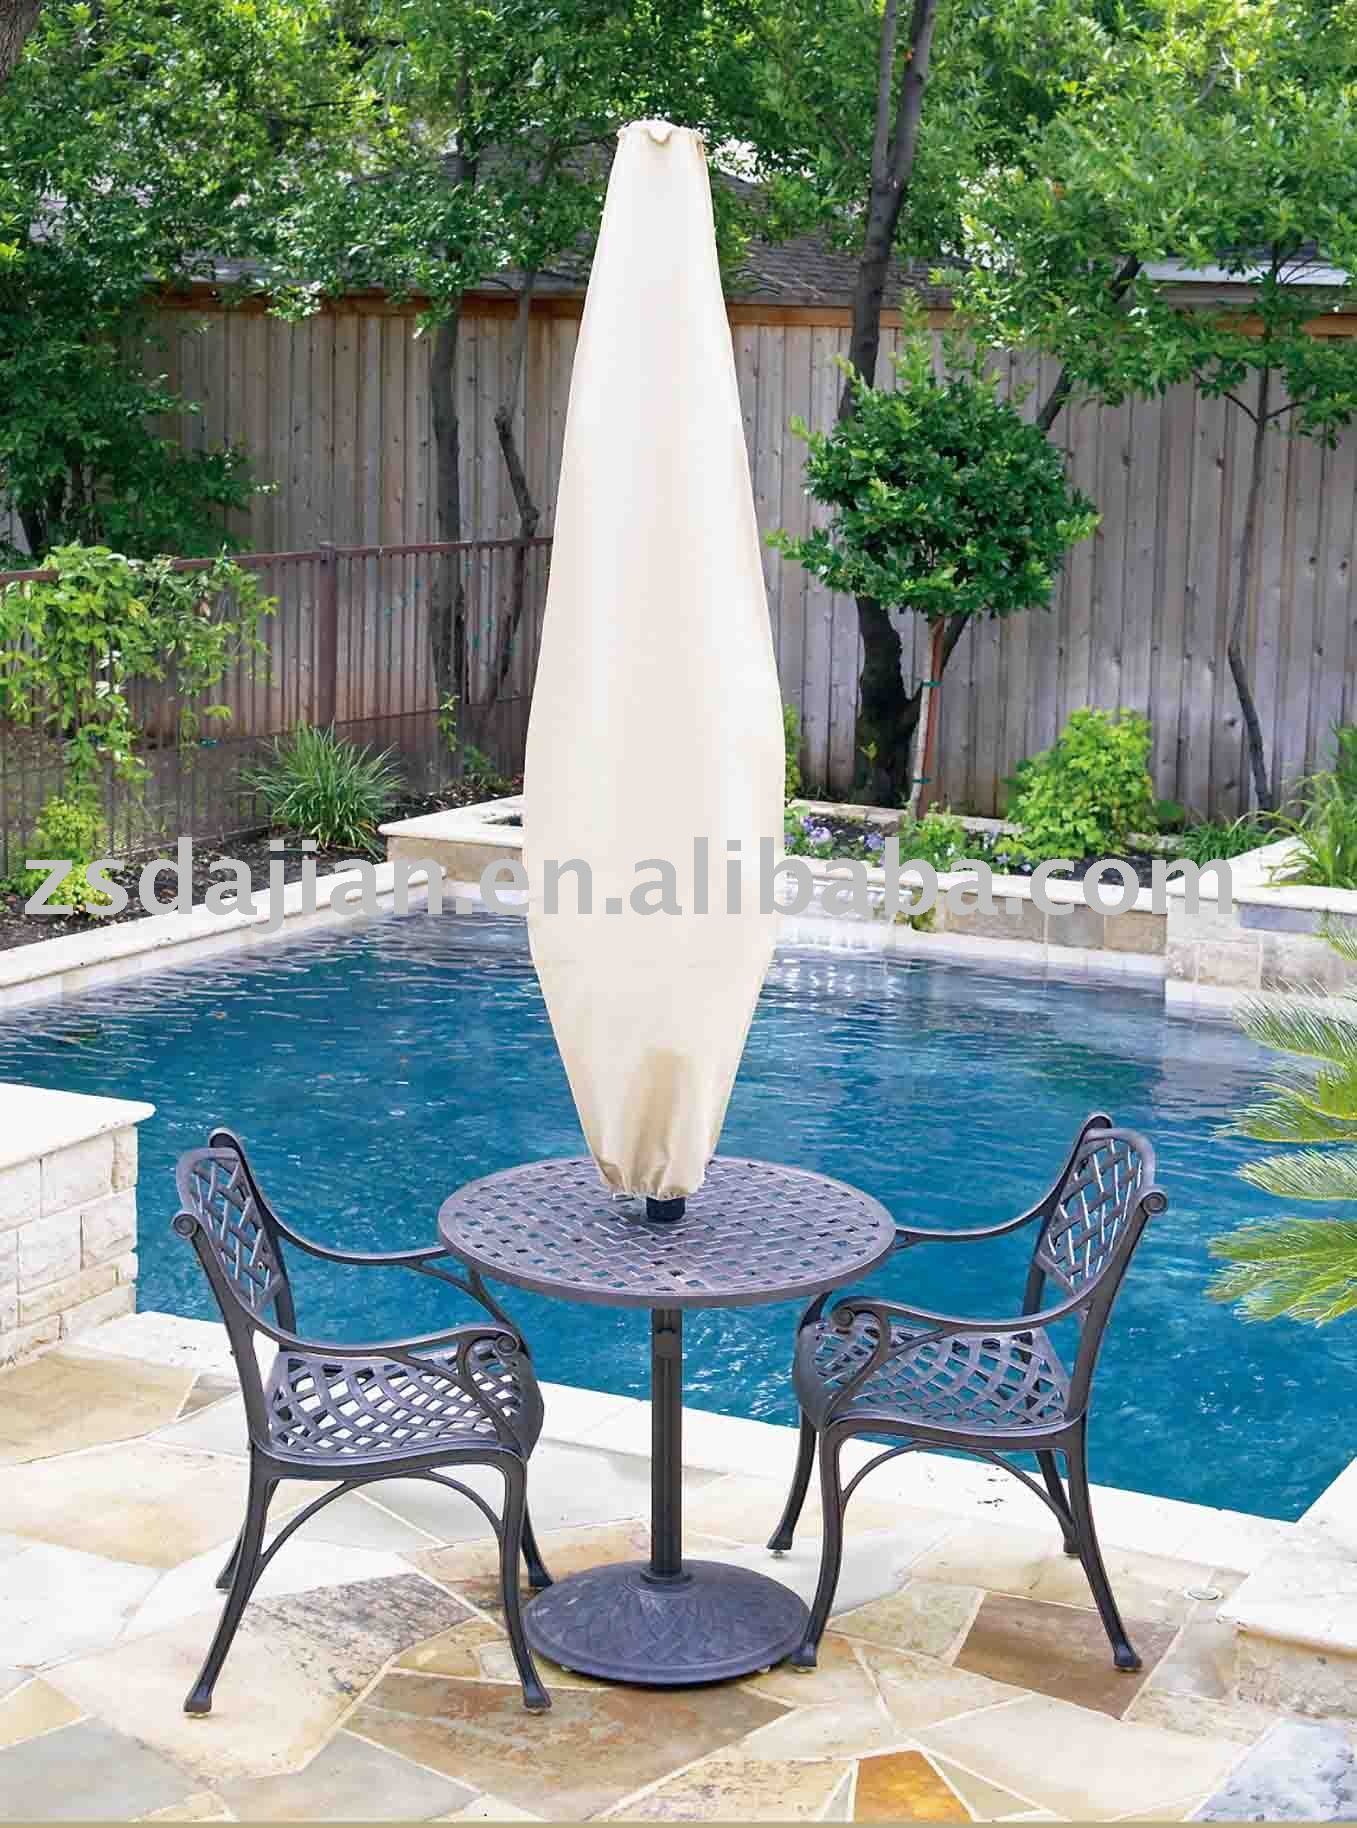 outdoor furniture cover - Umbrella Set ; PVC/PVB/PE with polyester 600D